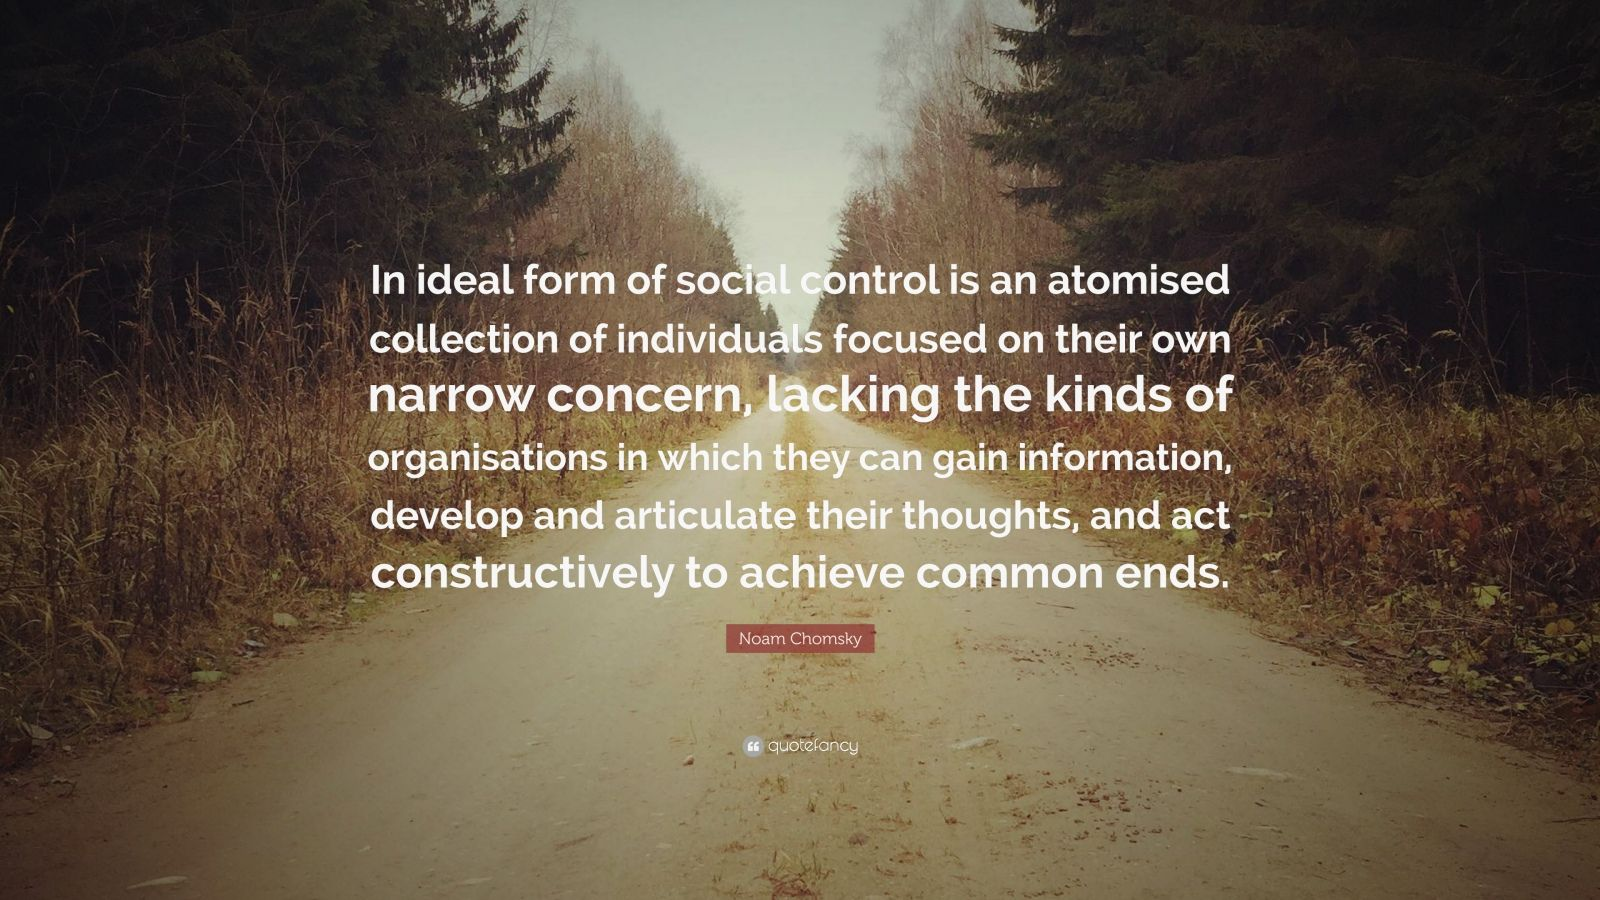 "Noam Chomsky Quote: ""In ideal form of social control is an atomised collection of individuals focused on their own narrow concern, lacking the kinds of organisations in which they can gain information, develop and articulate their thoughts, and act constructively to achieve common ends."""